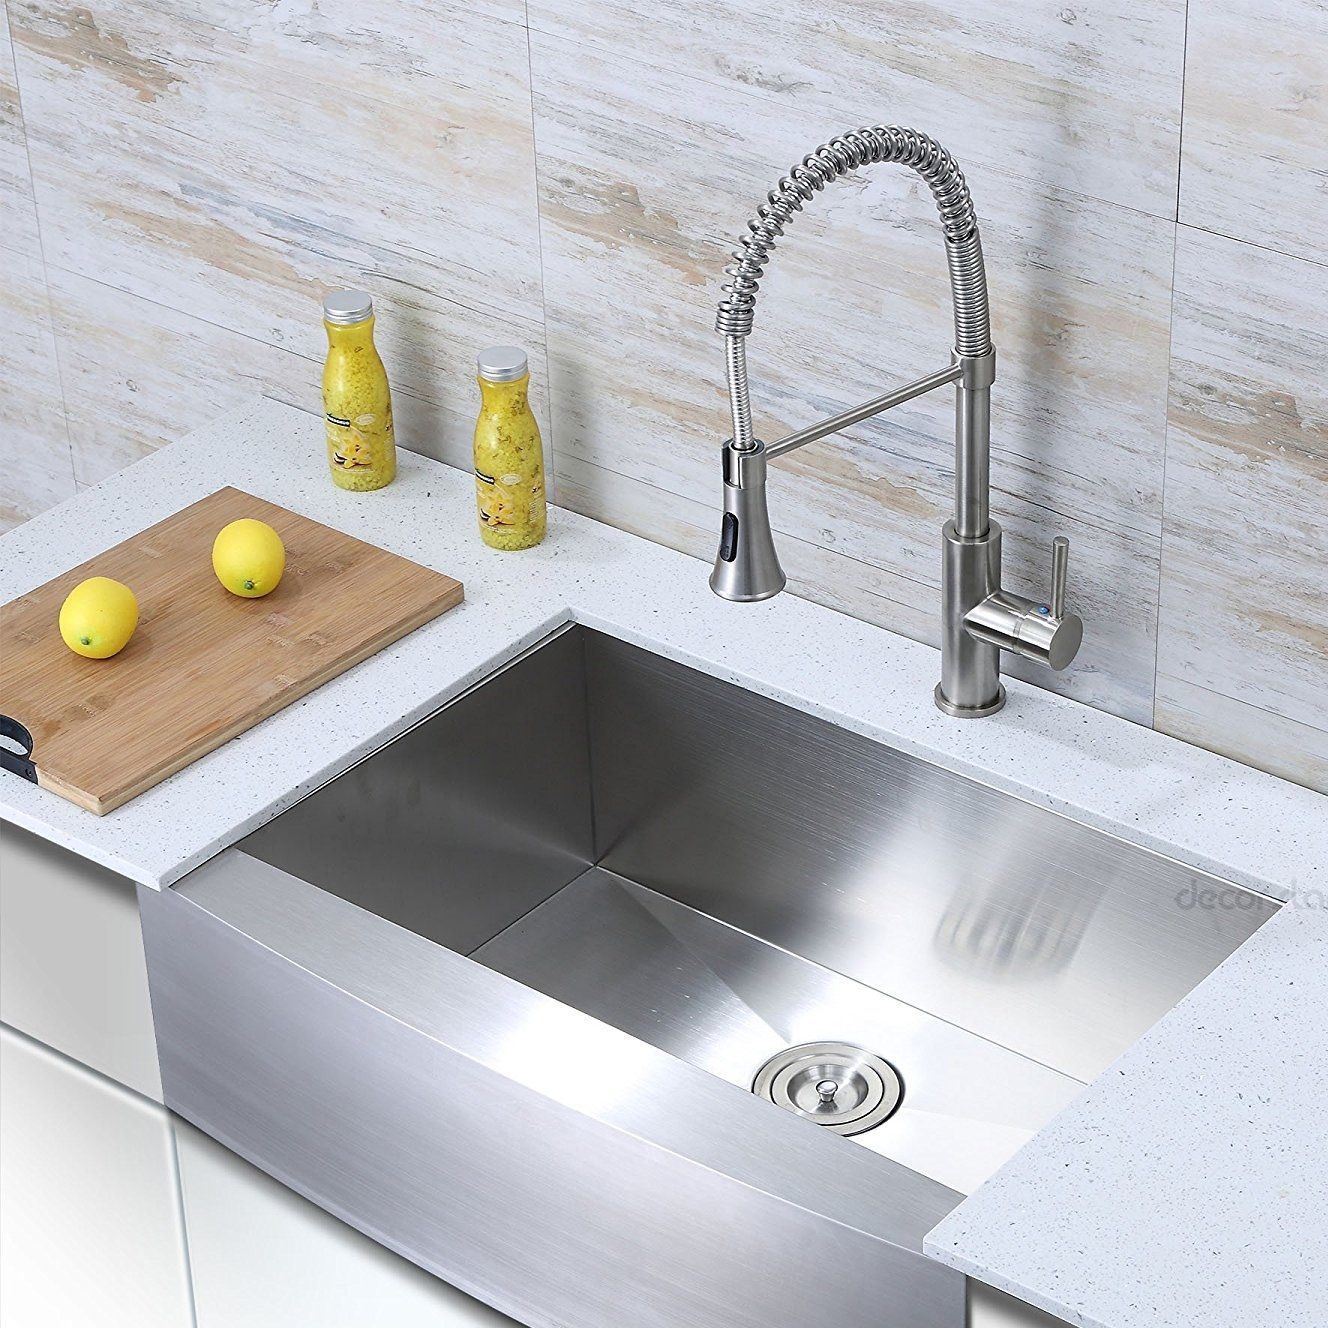 Stainless Steel Farmhouse Sinks Discover The Best Stainless Steel Apron Front Sinks For You Farmhouse Sink Kitchen Apron Sink Kitchen Single Bowl Kitchen Sink